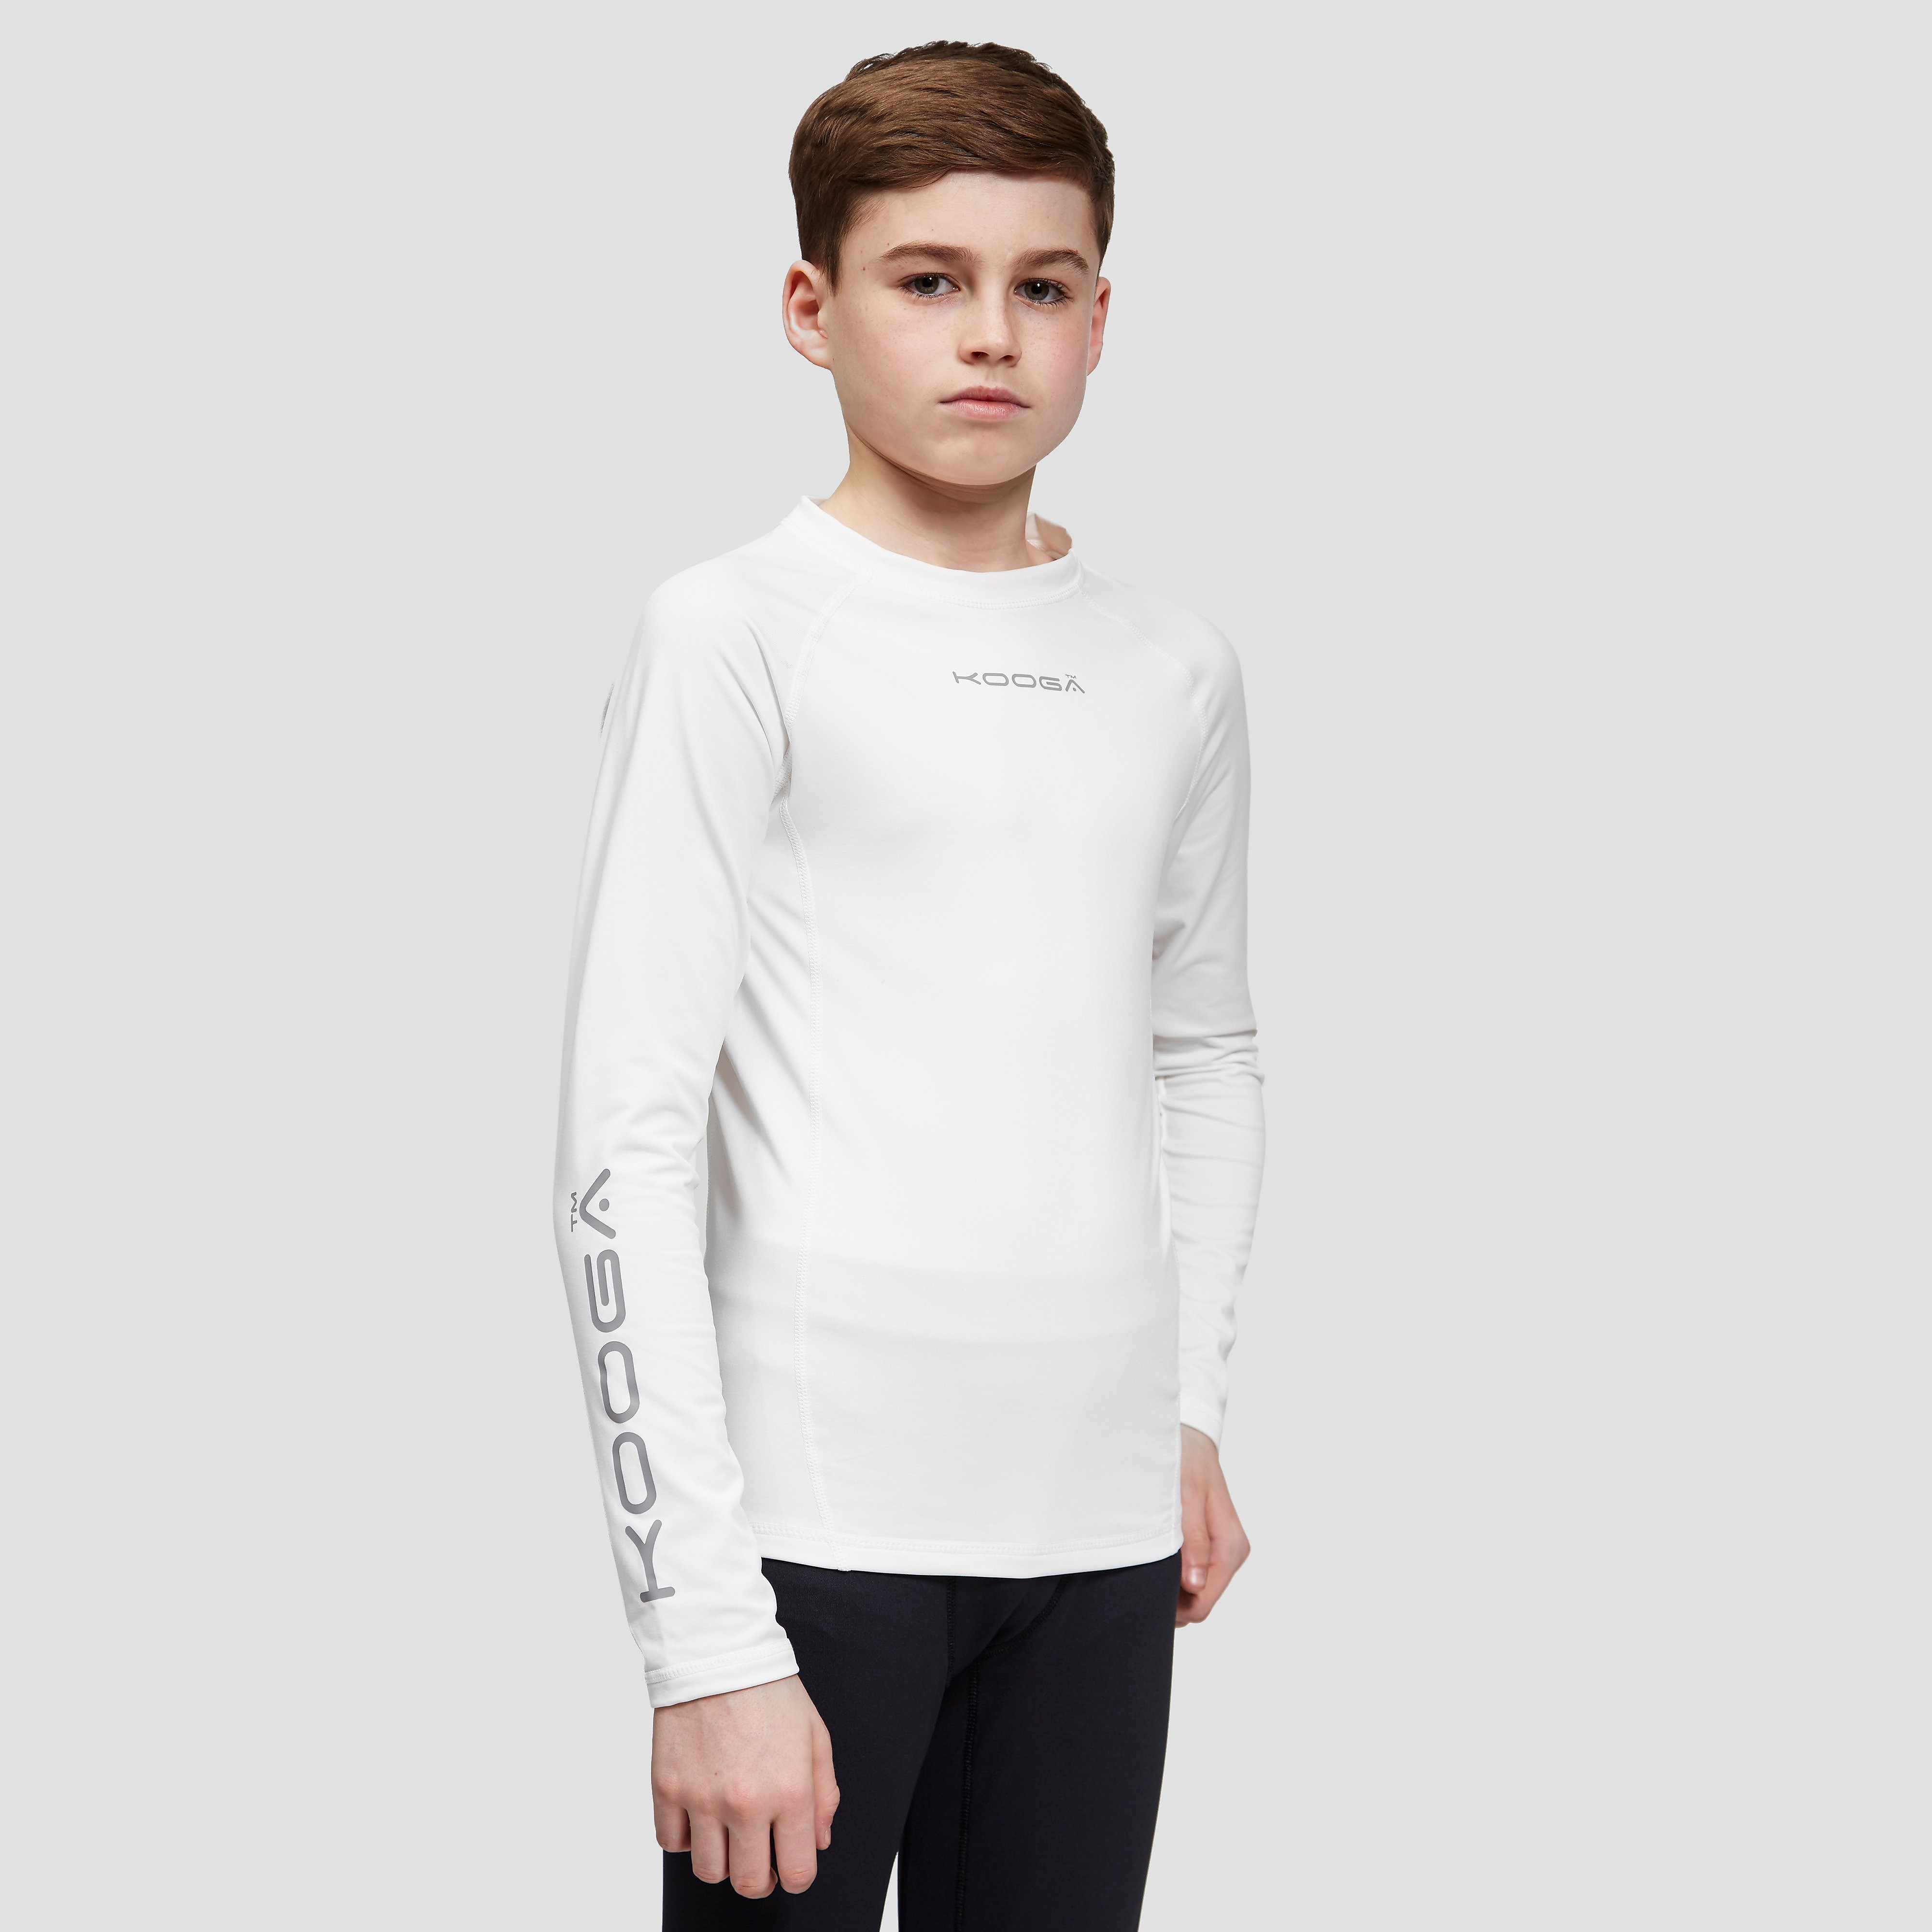 KooGa Elite Power Junior Compression Top